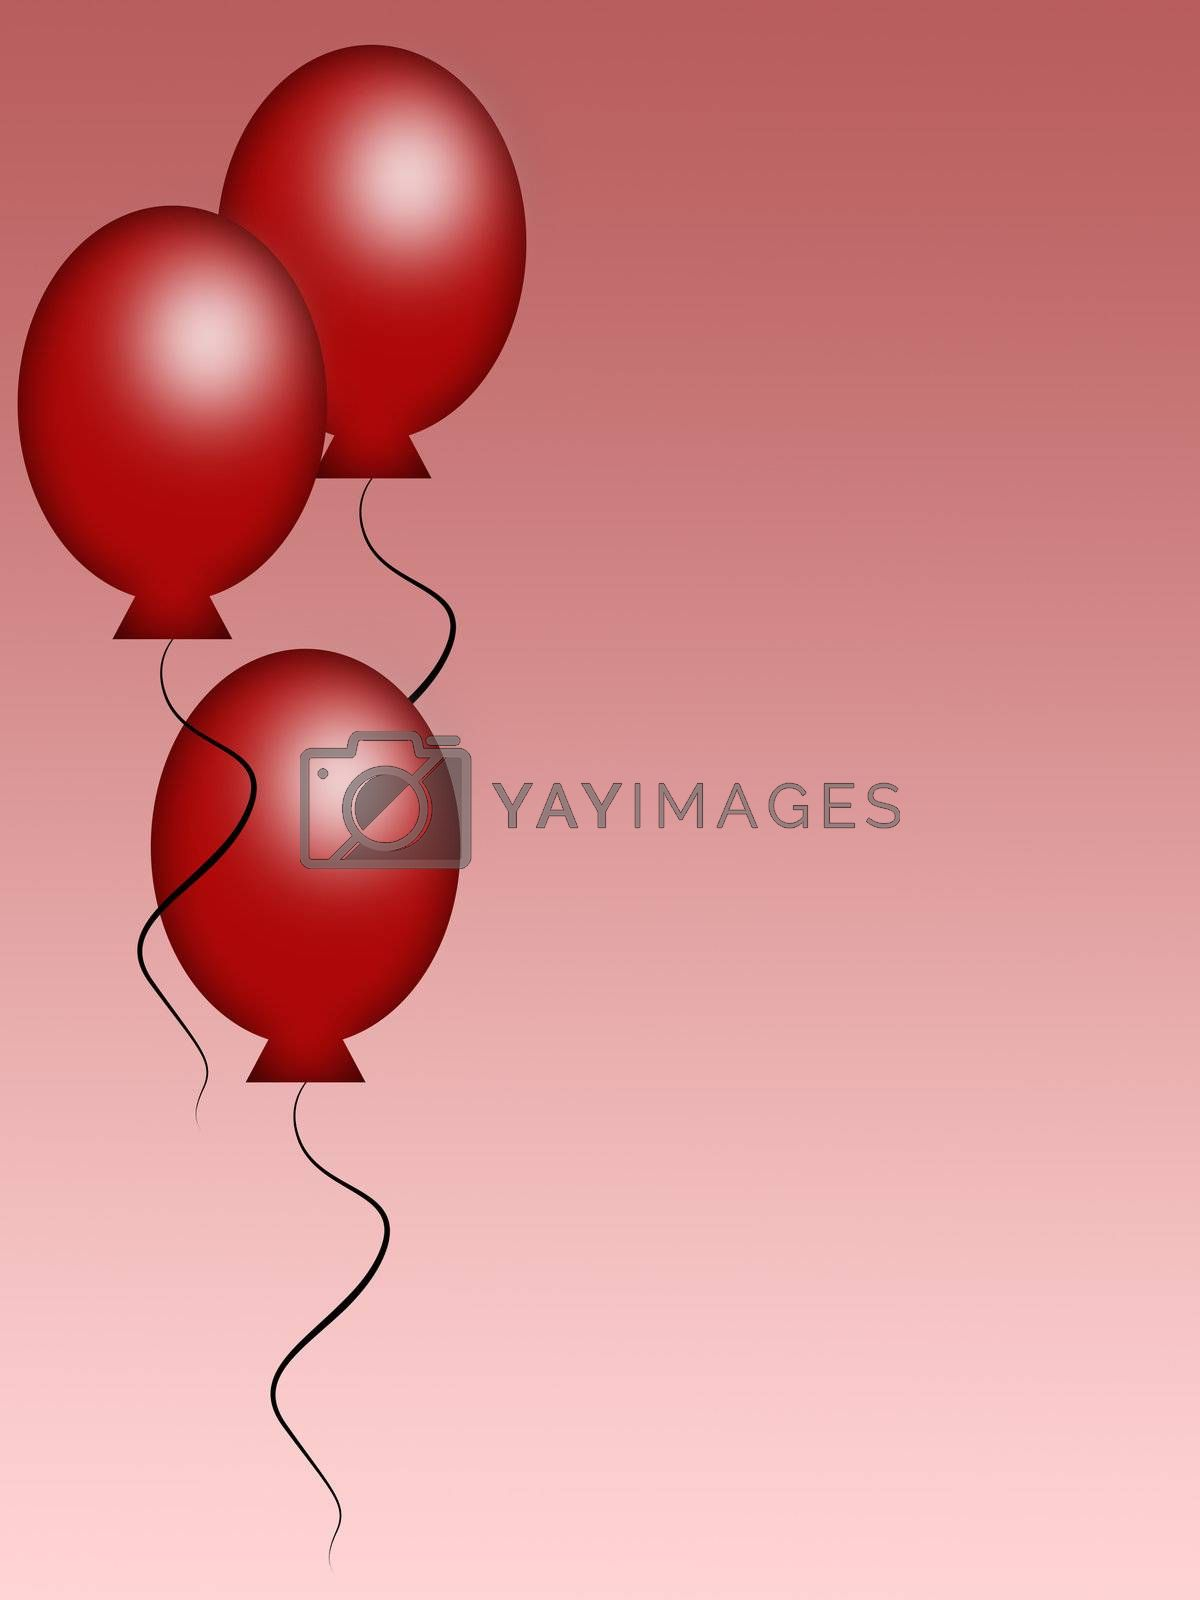 Three red balloons on a pink background